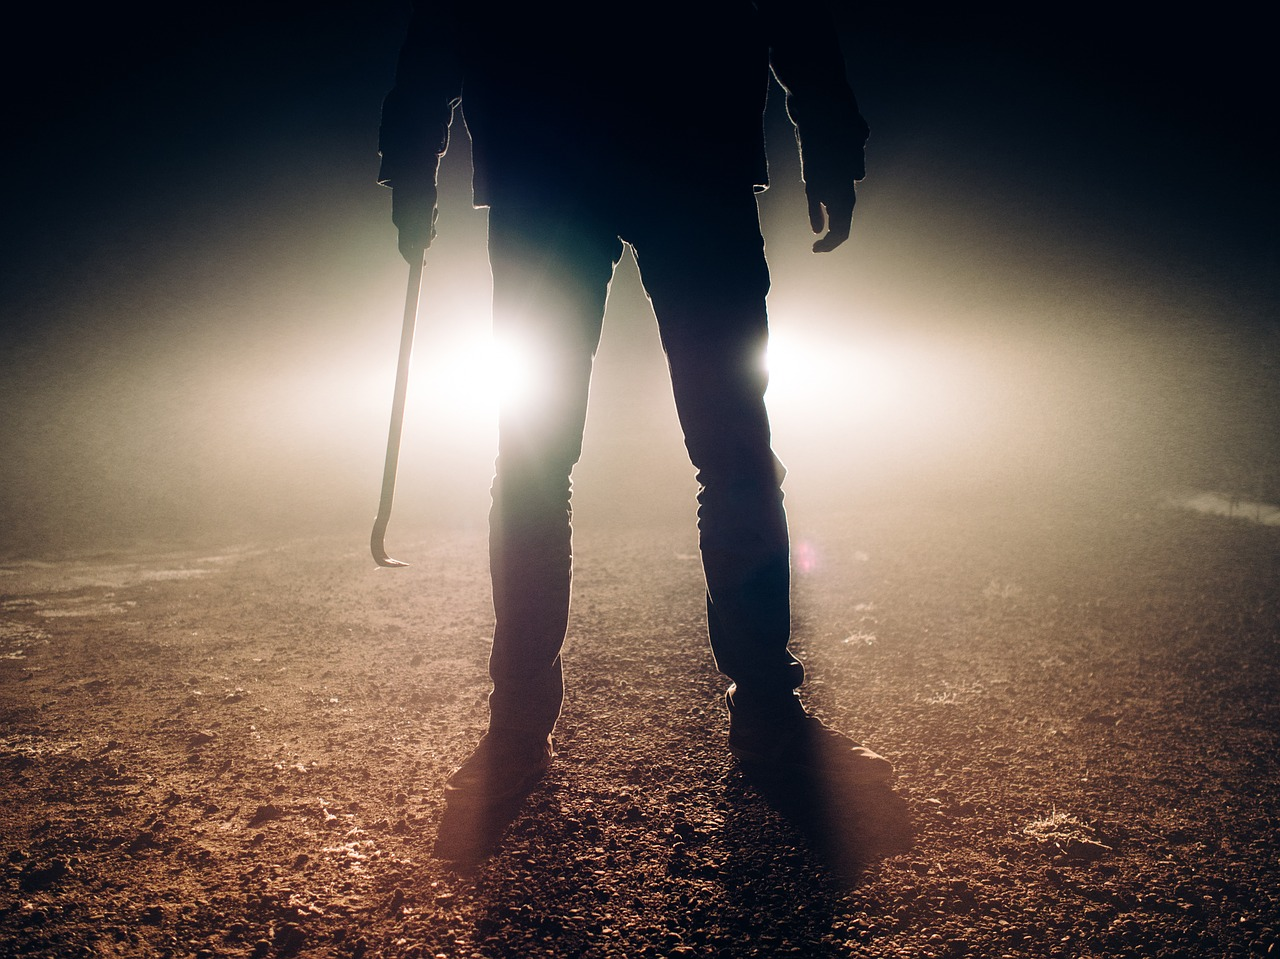 killer,horror,jimmy,jemmy,prybar,crowbar,evil,fear,scary,halloween,spooky,creepy,nightmare,murder,deadly,holding,tool,person,violence,crime,danger,dark,headlights,free pictures, free photos, free images, royalty free, free illustrations, public domain